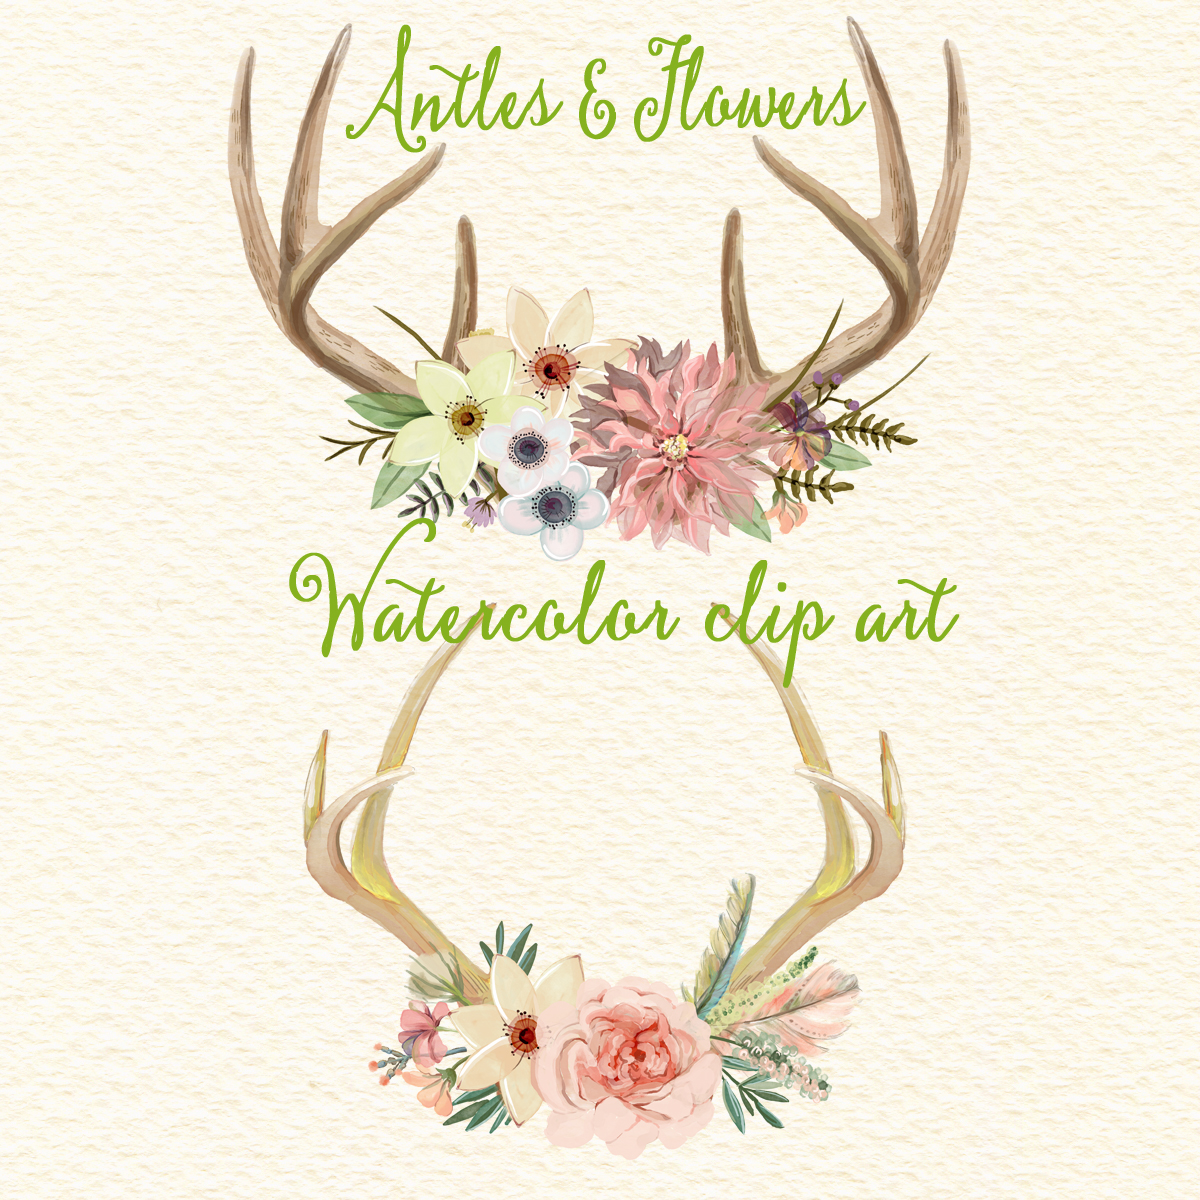 Watercolor antler clipart picture freeuse download Free Flower Antler Cliparts, Download Free Clip Art, Free Clip Art ... picture freeuse download